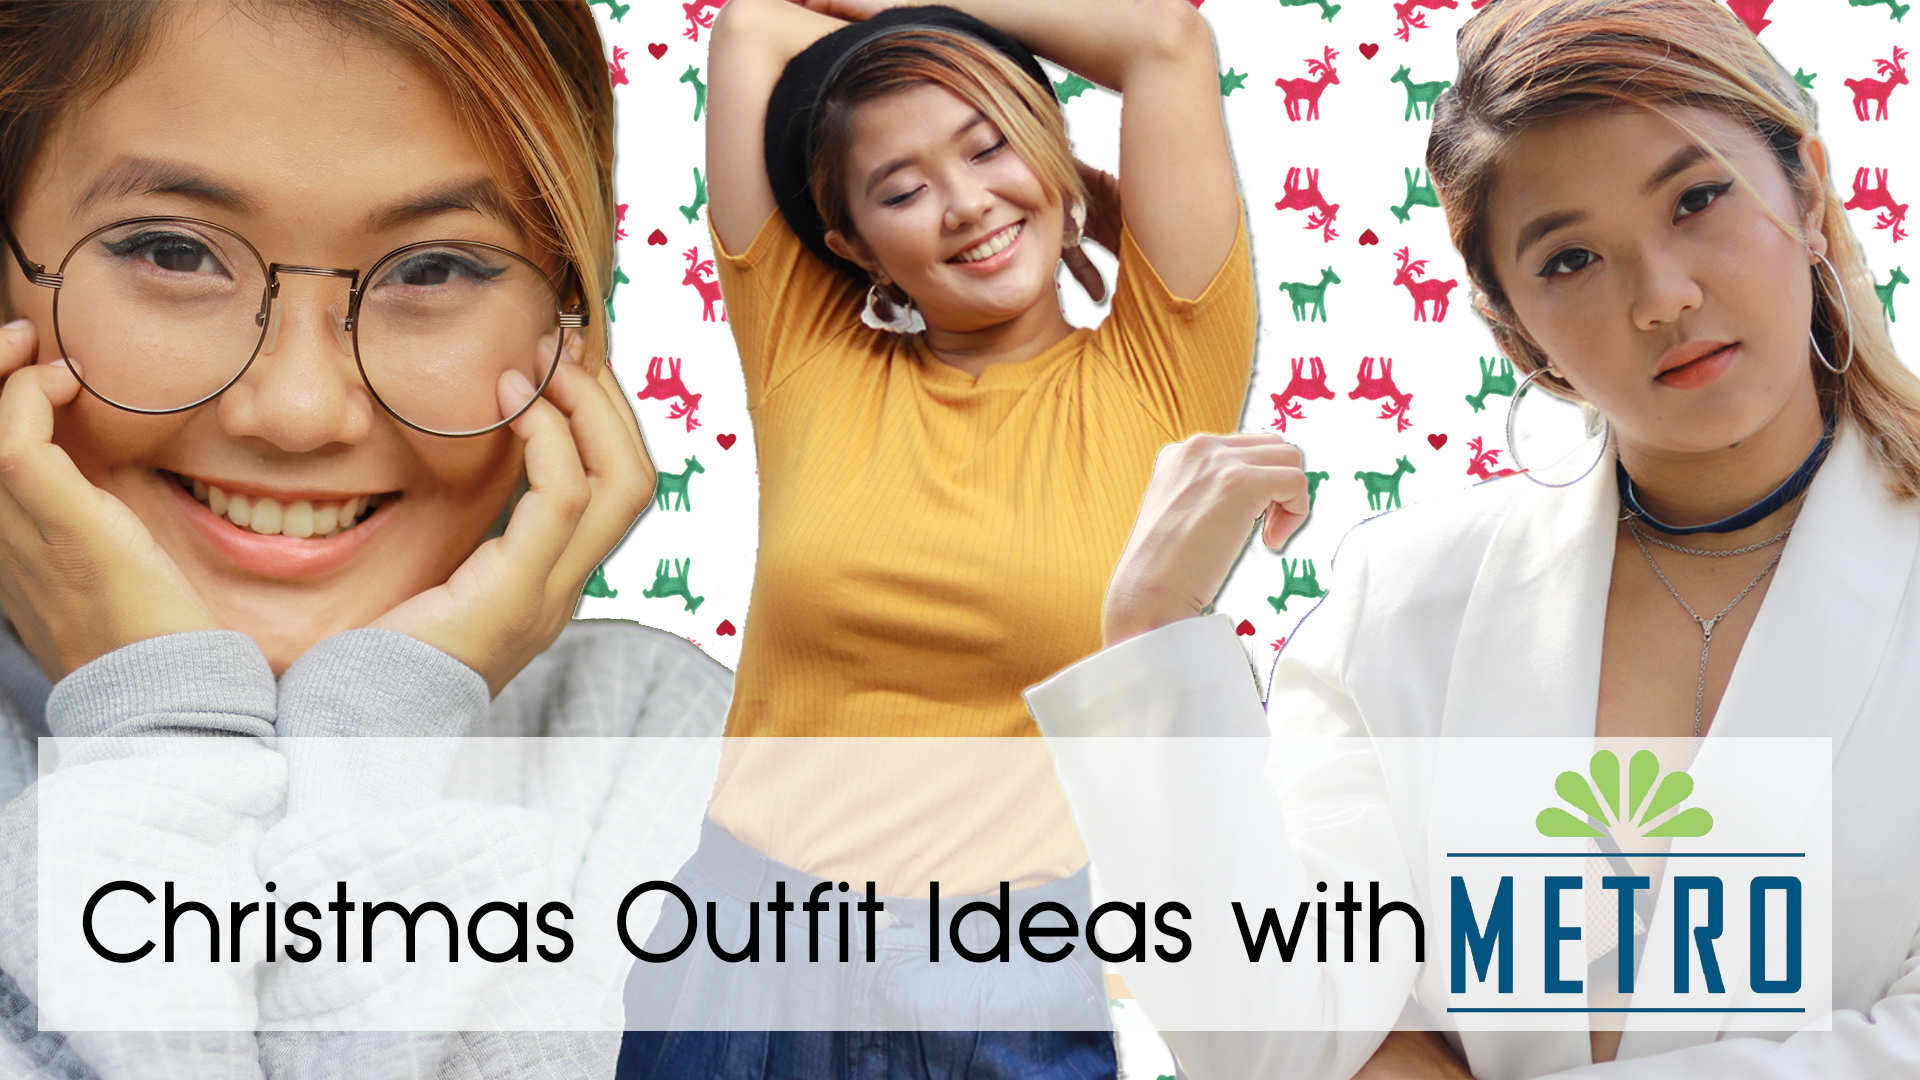 Christmas Outfit Ideas Lookbook ft. Metro Gaisano + December 2017 Sale Previews